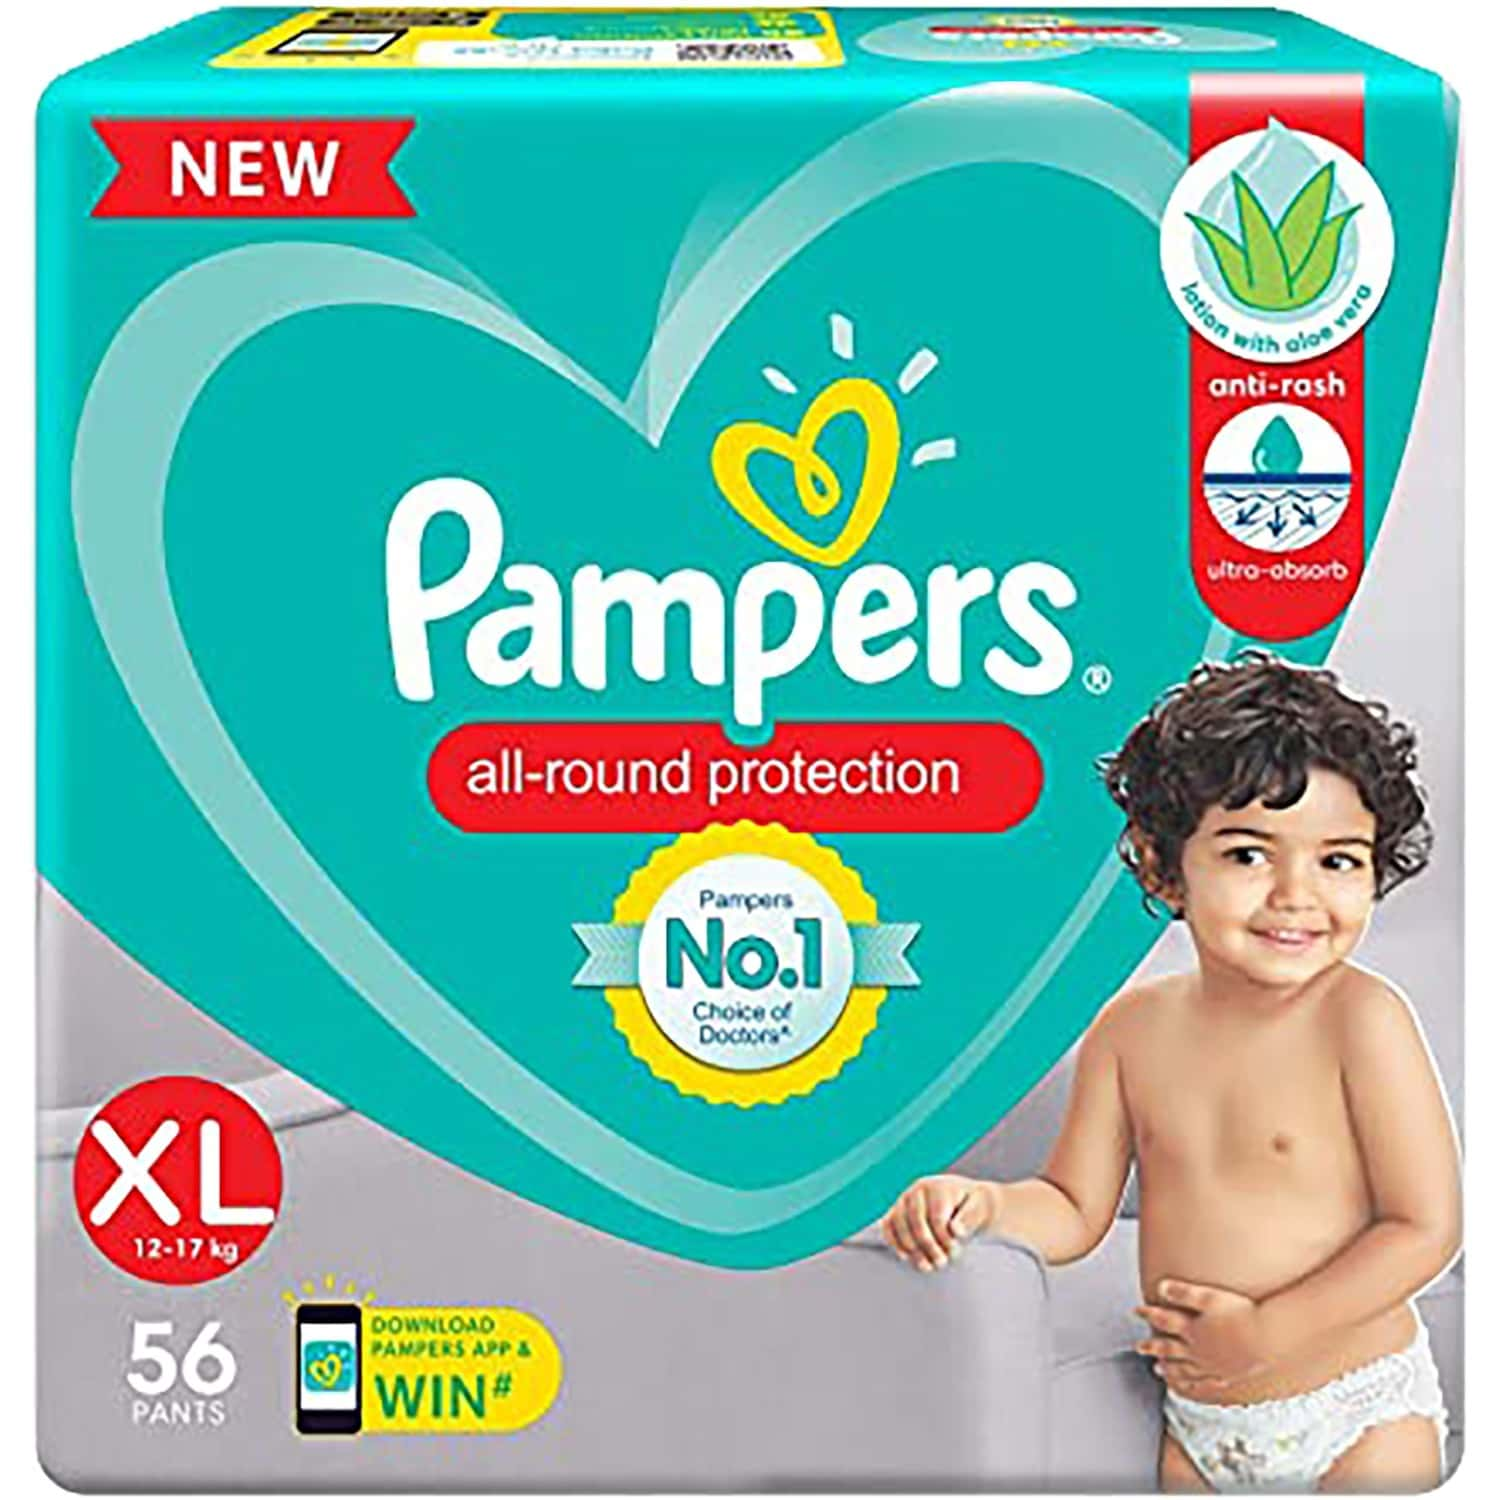 Pampers New Diapers Pants, Xl - 56 Count